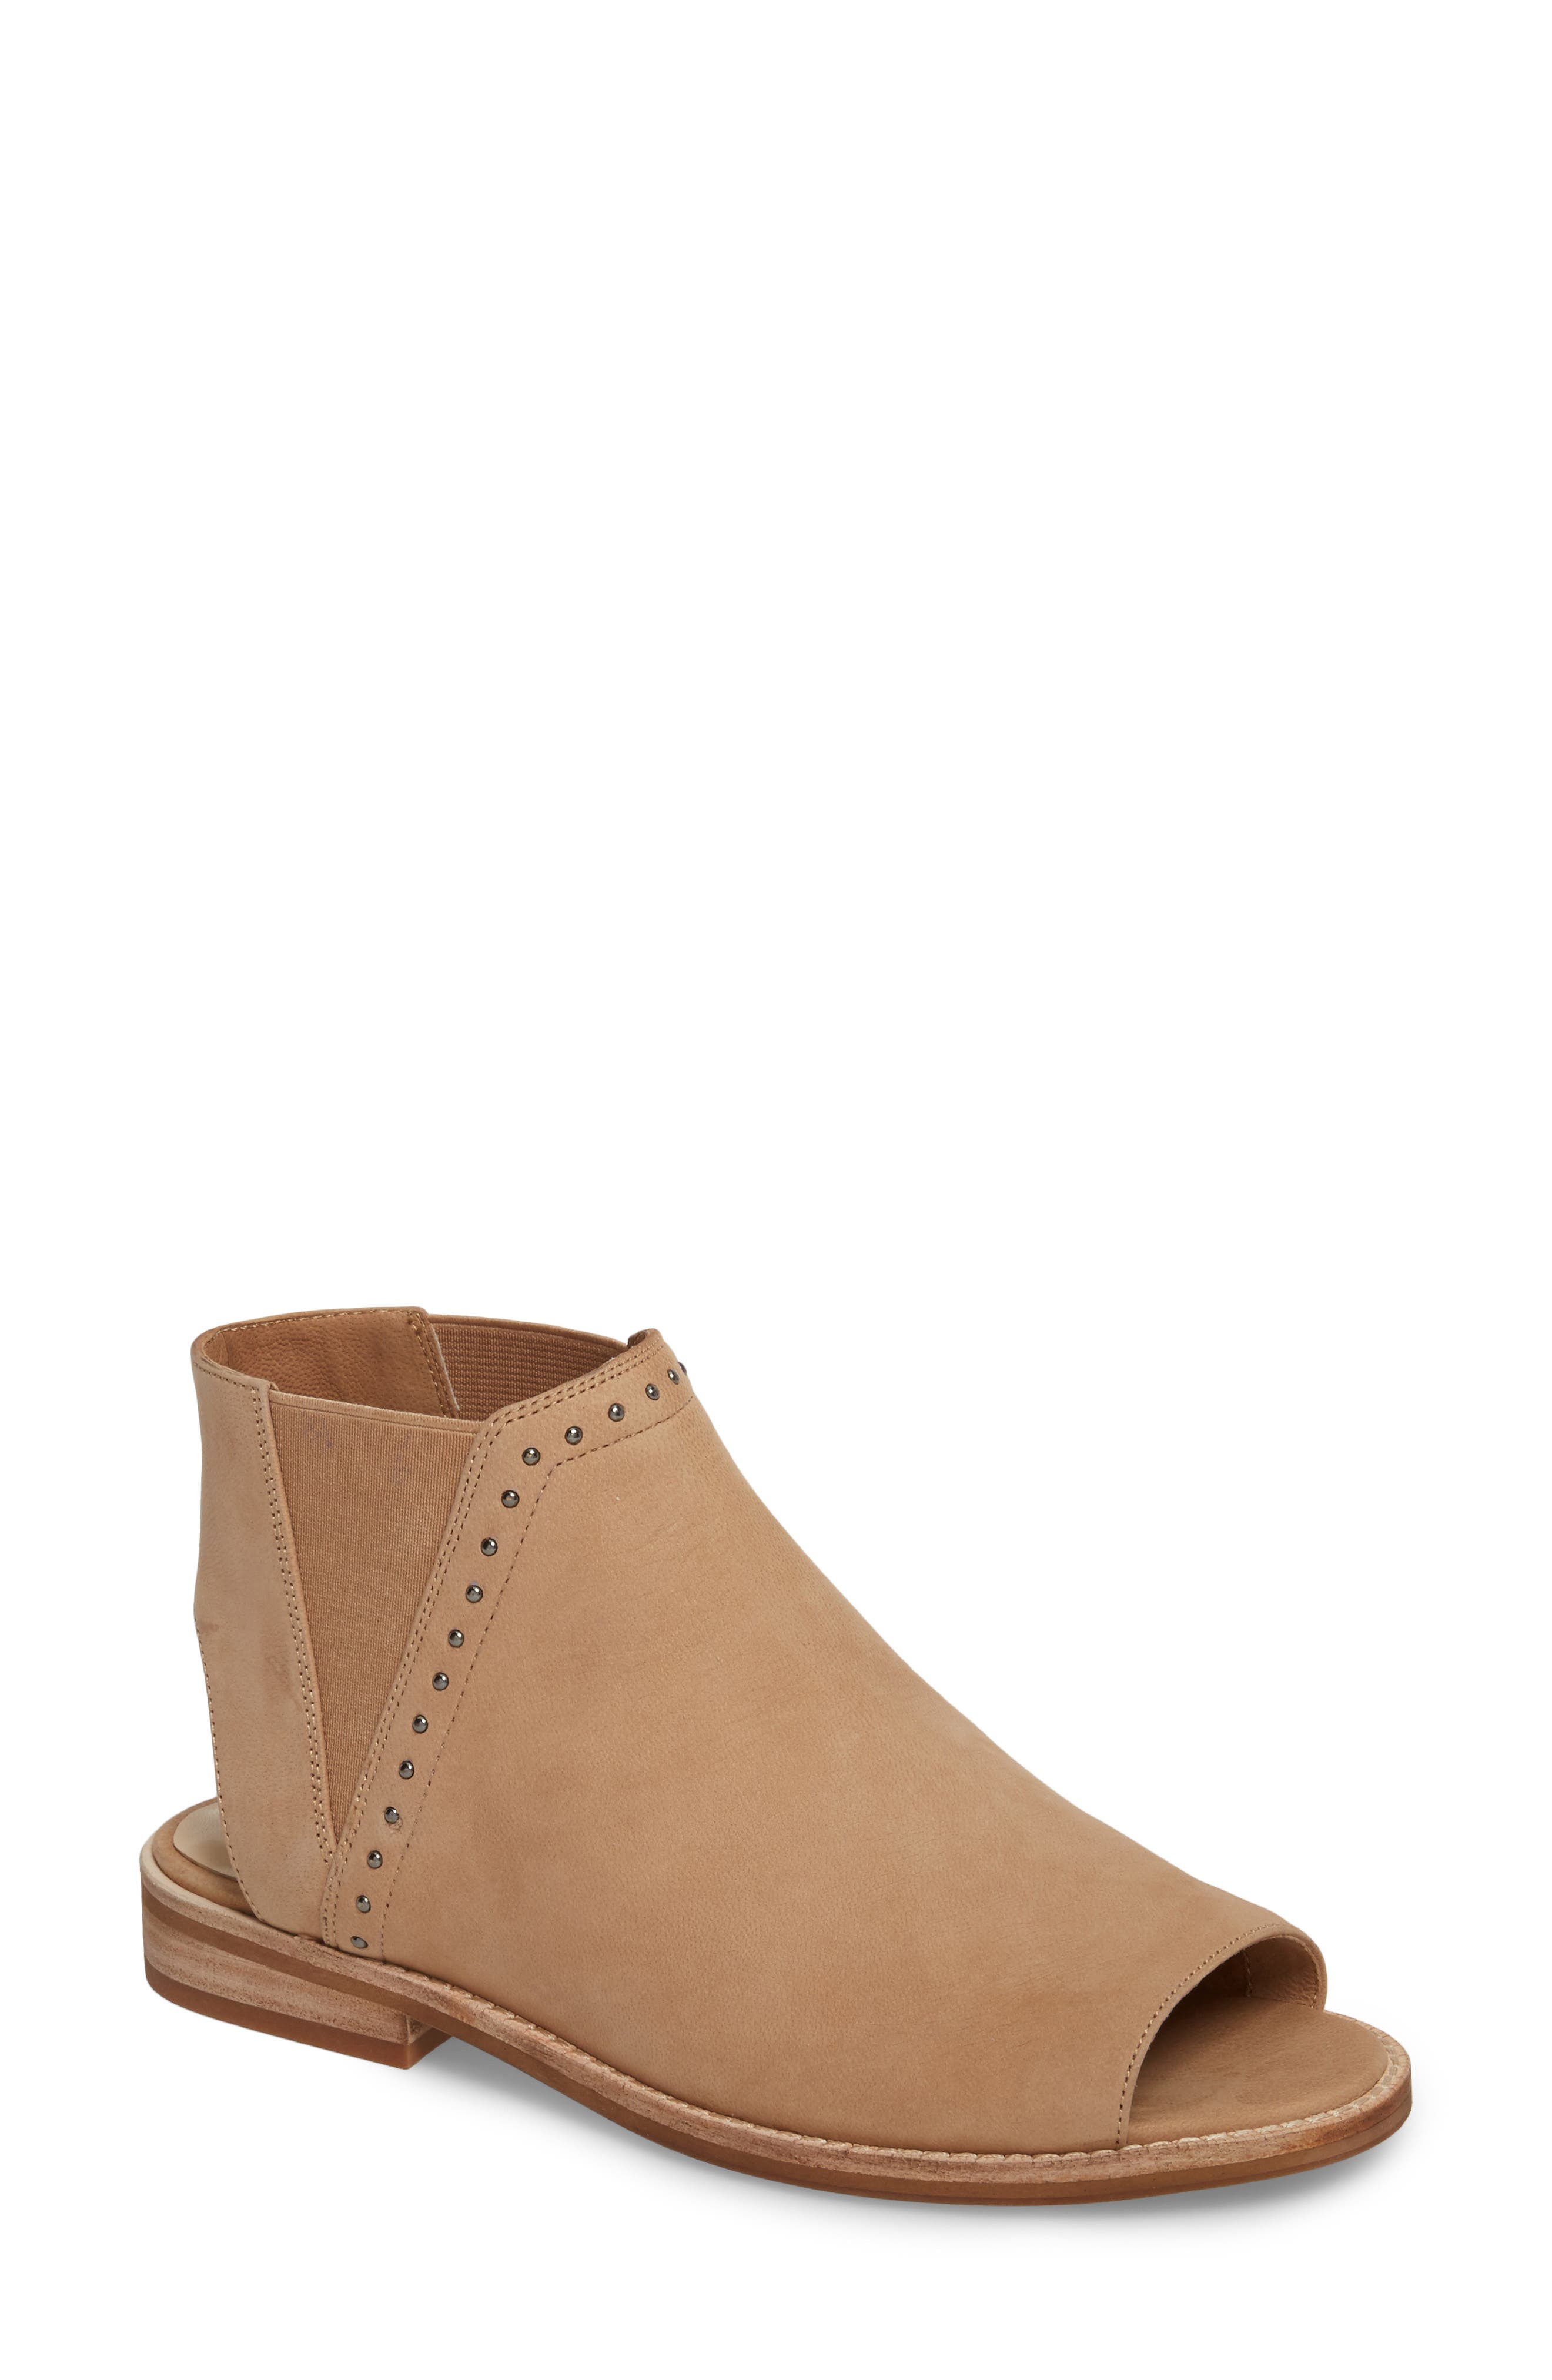 Birty Bootie,                             Main thumbnail 1, color,                             Dusty Taupe